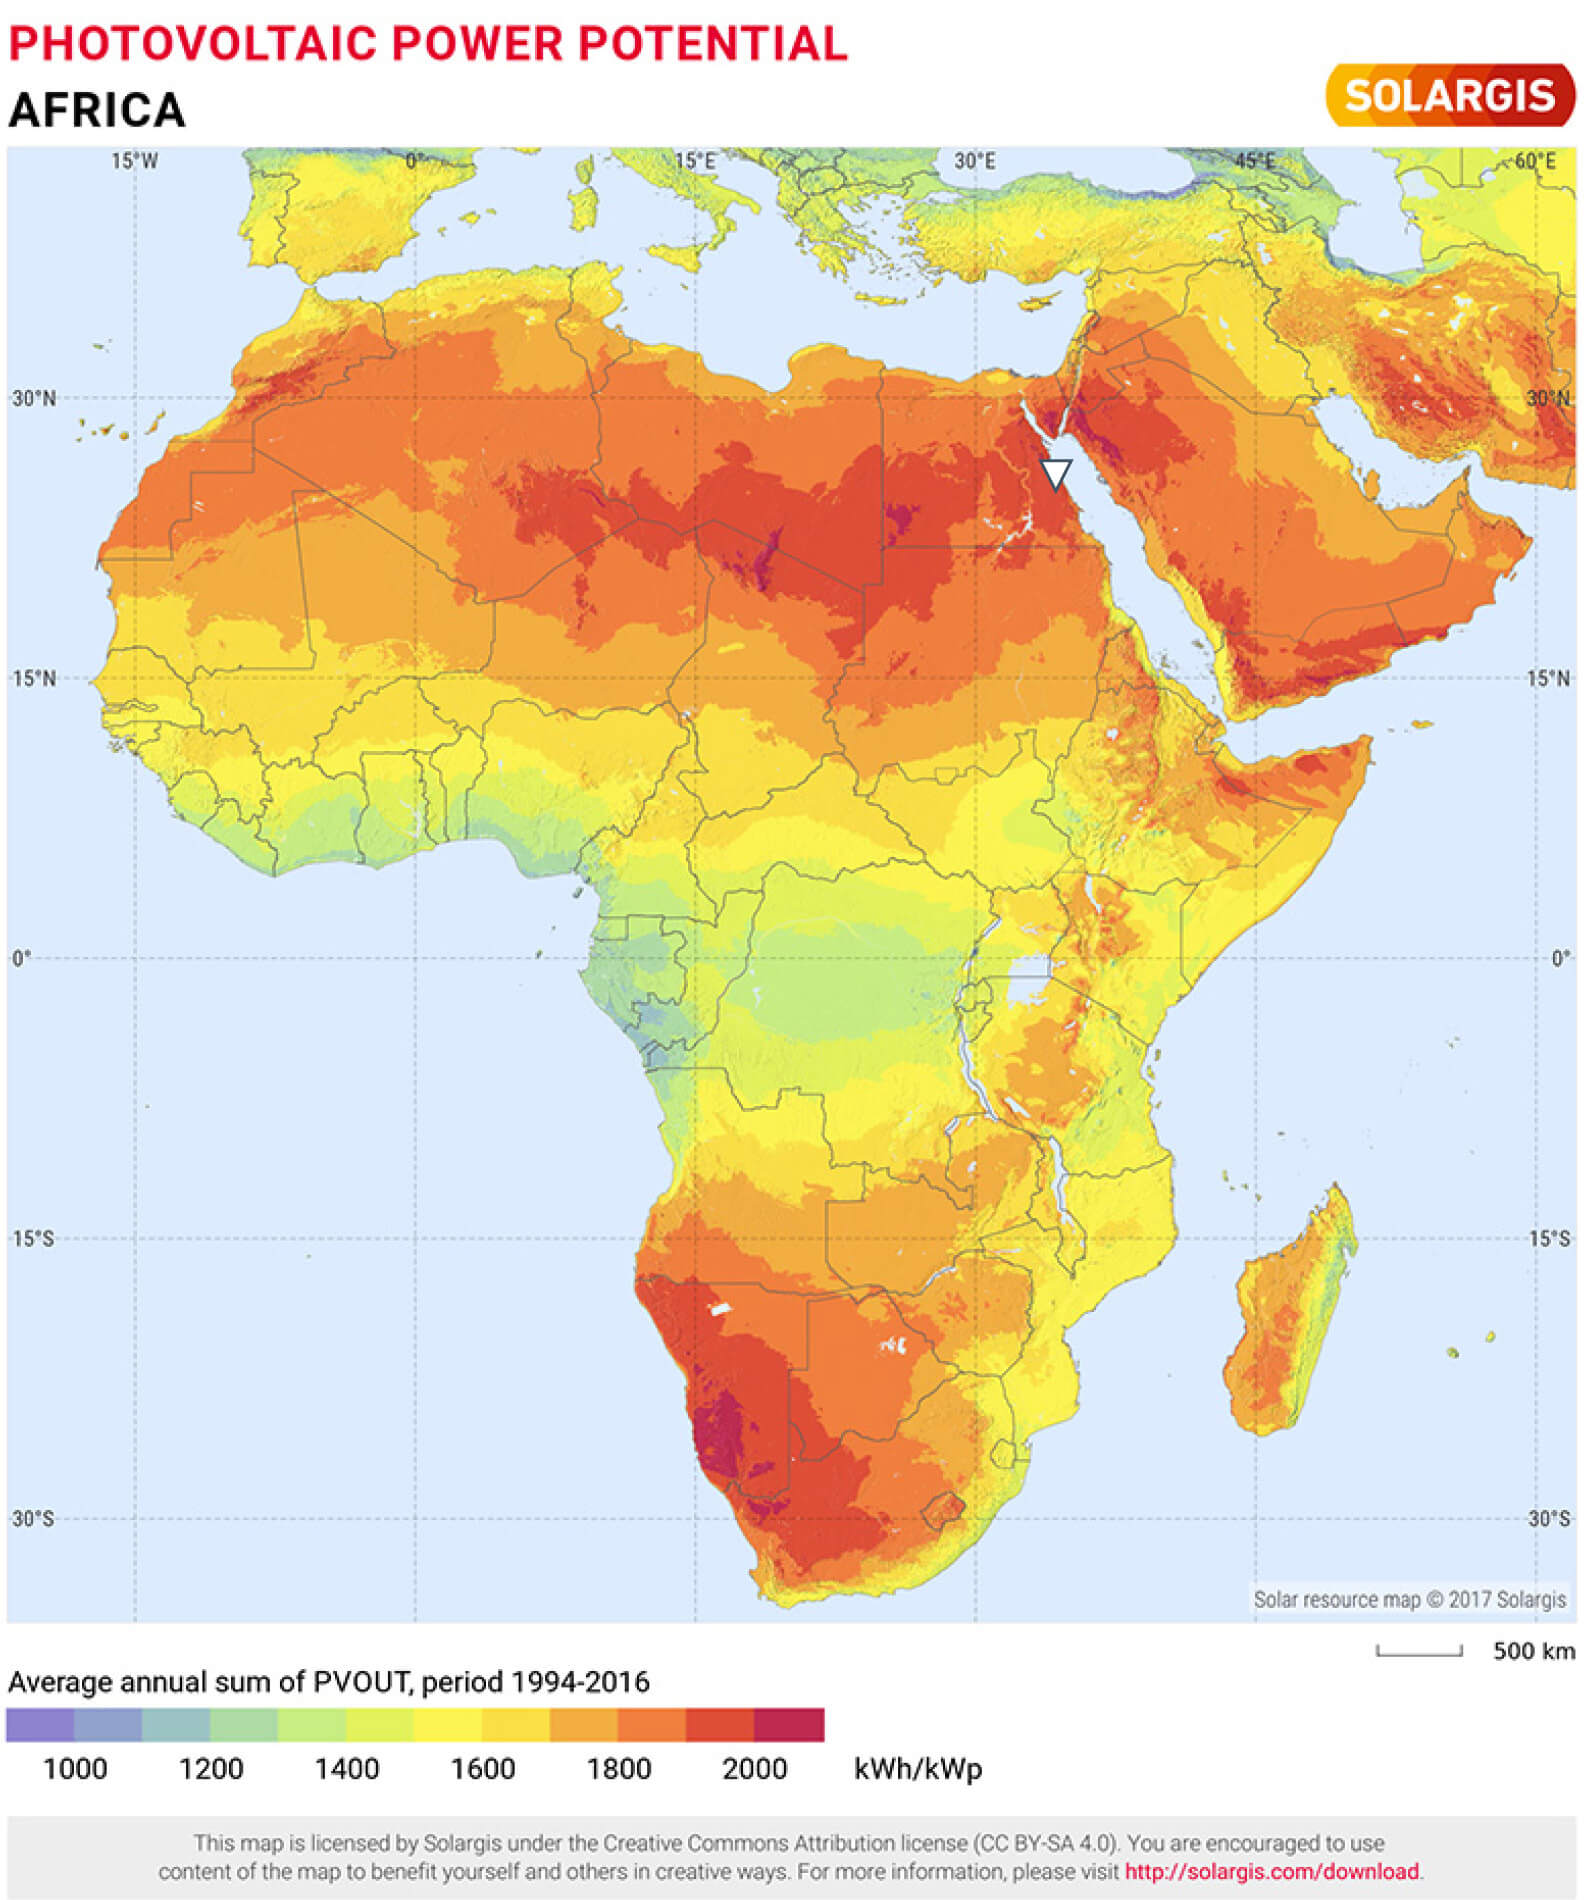 Photovoltaic power potential of Africa